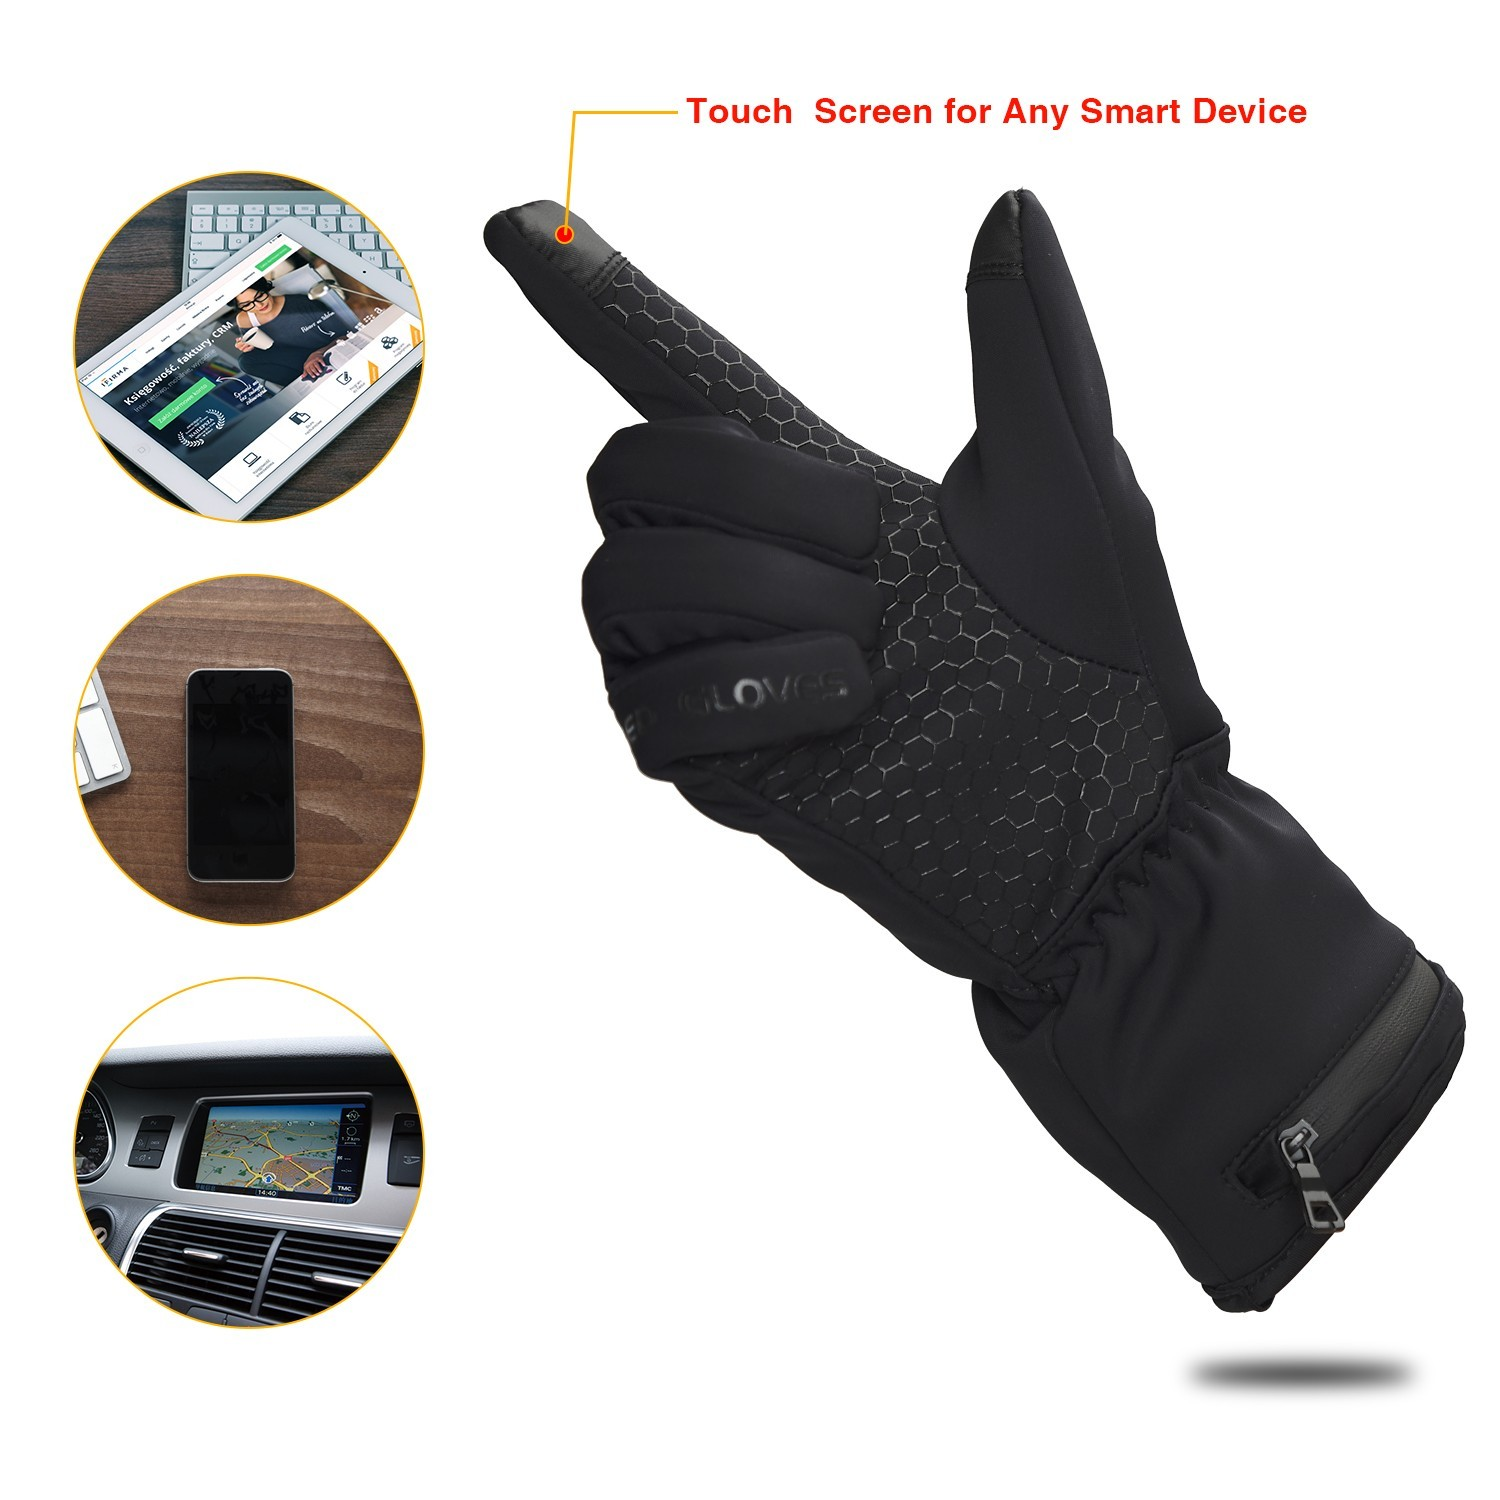 Dr. Warm high quality heated winter gloves for outdoor